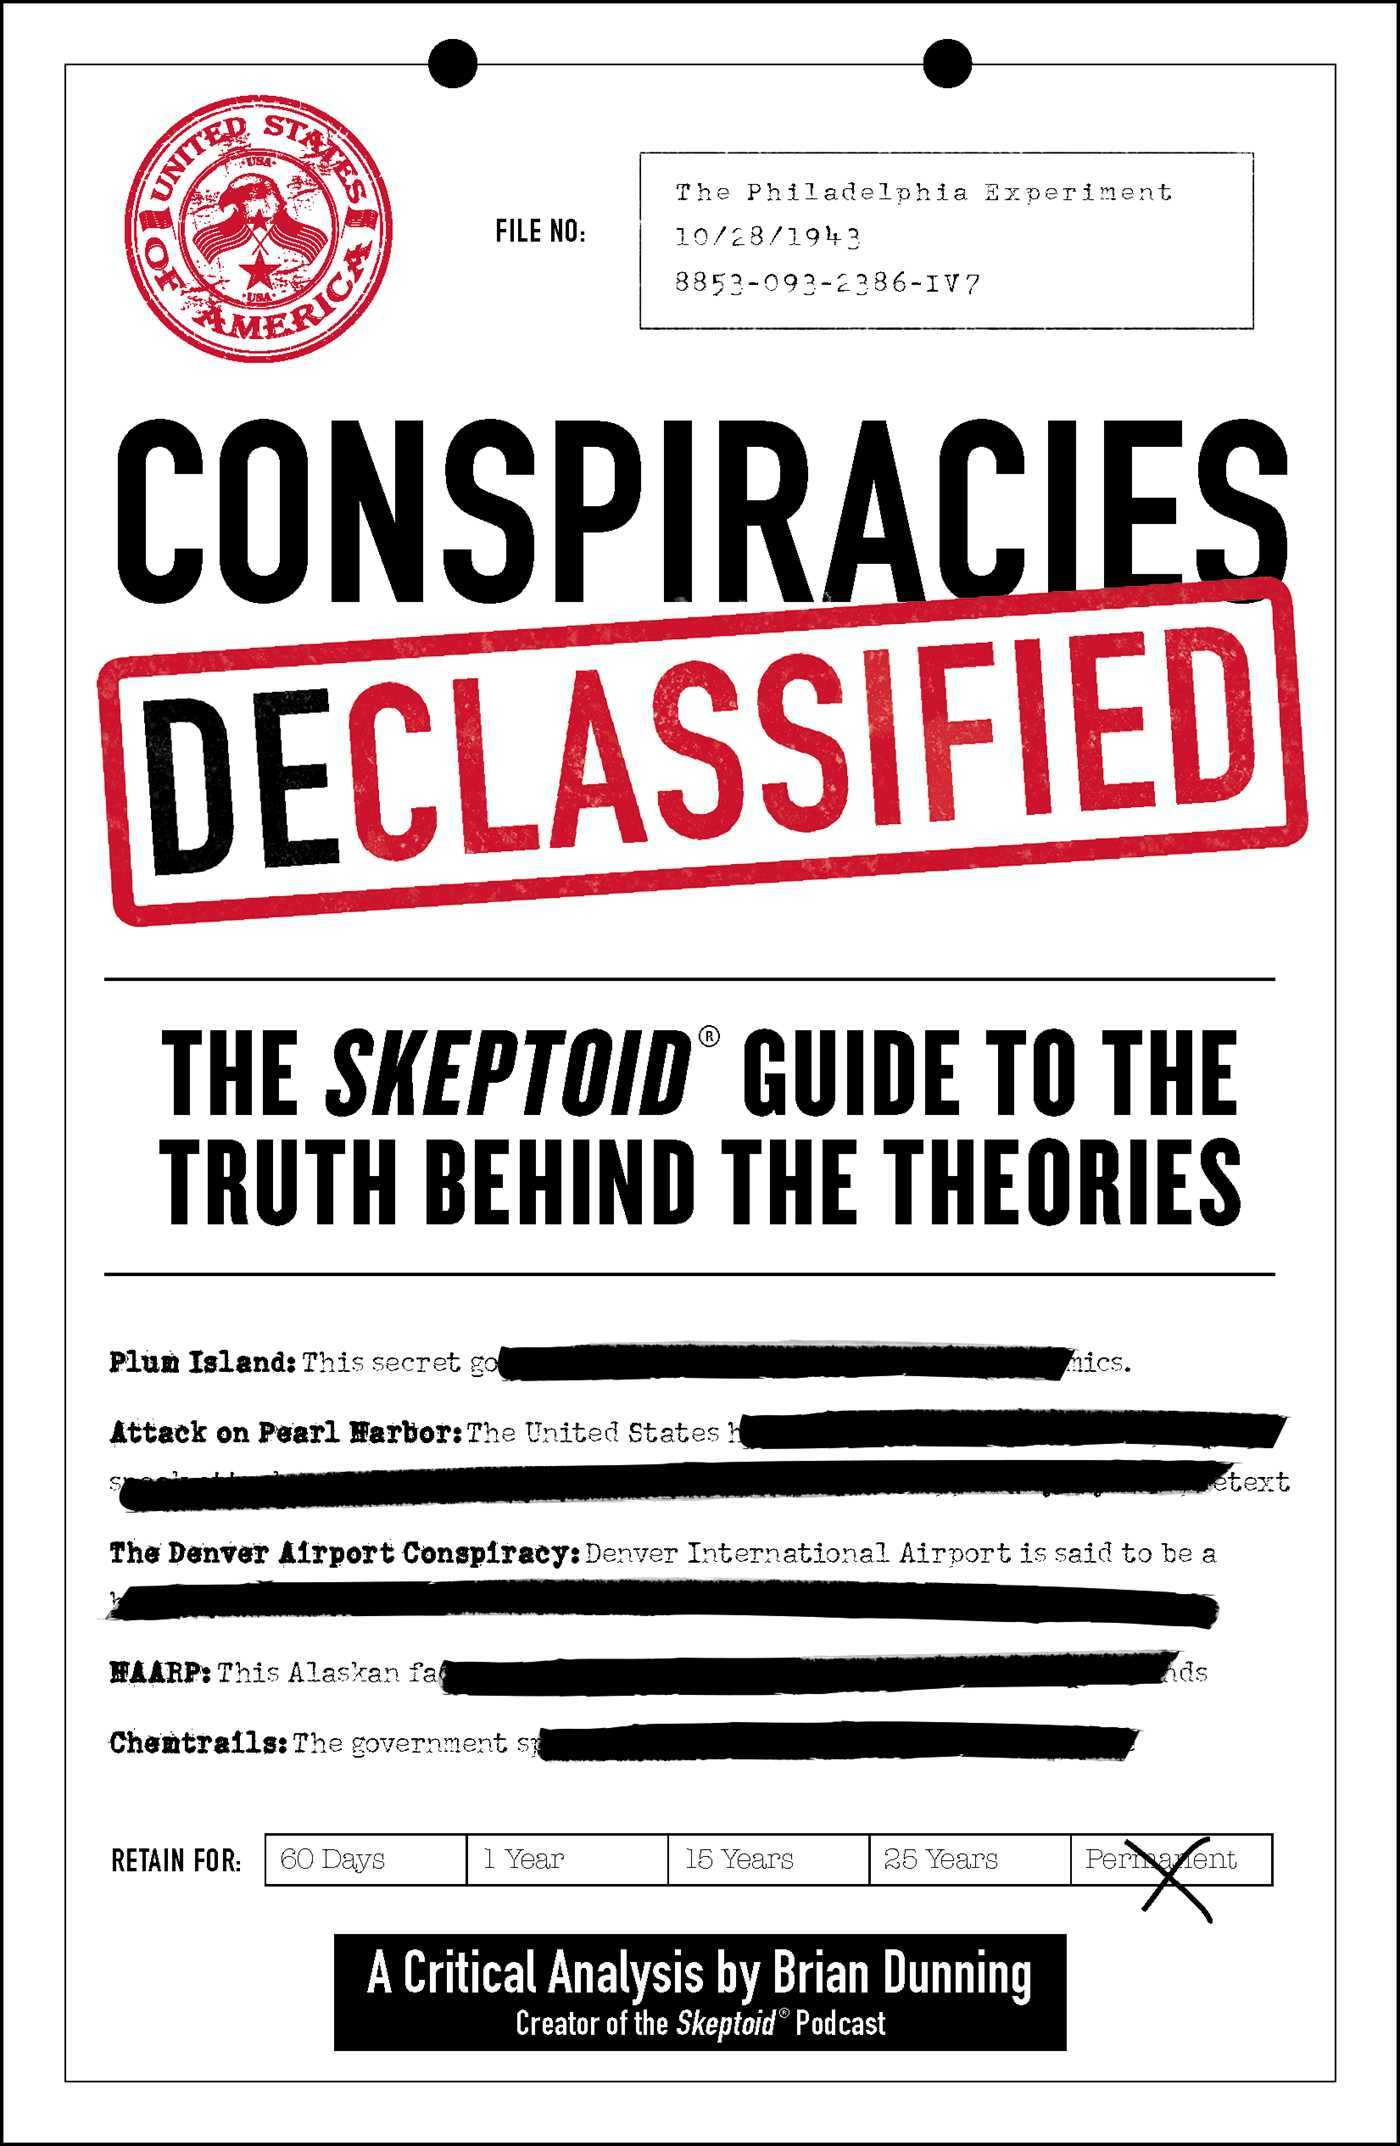 Conspiracies Declassified The Skeptoid Guide to the Truth Behind the Theories